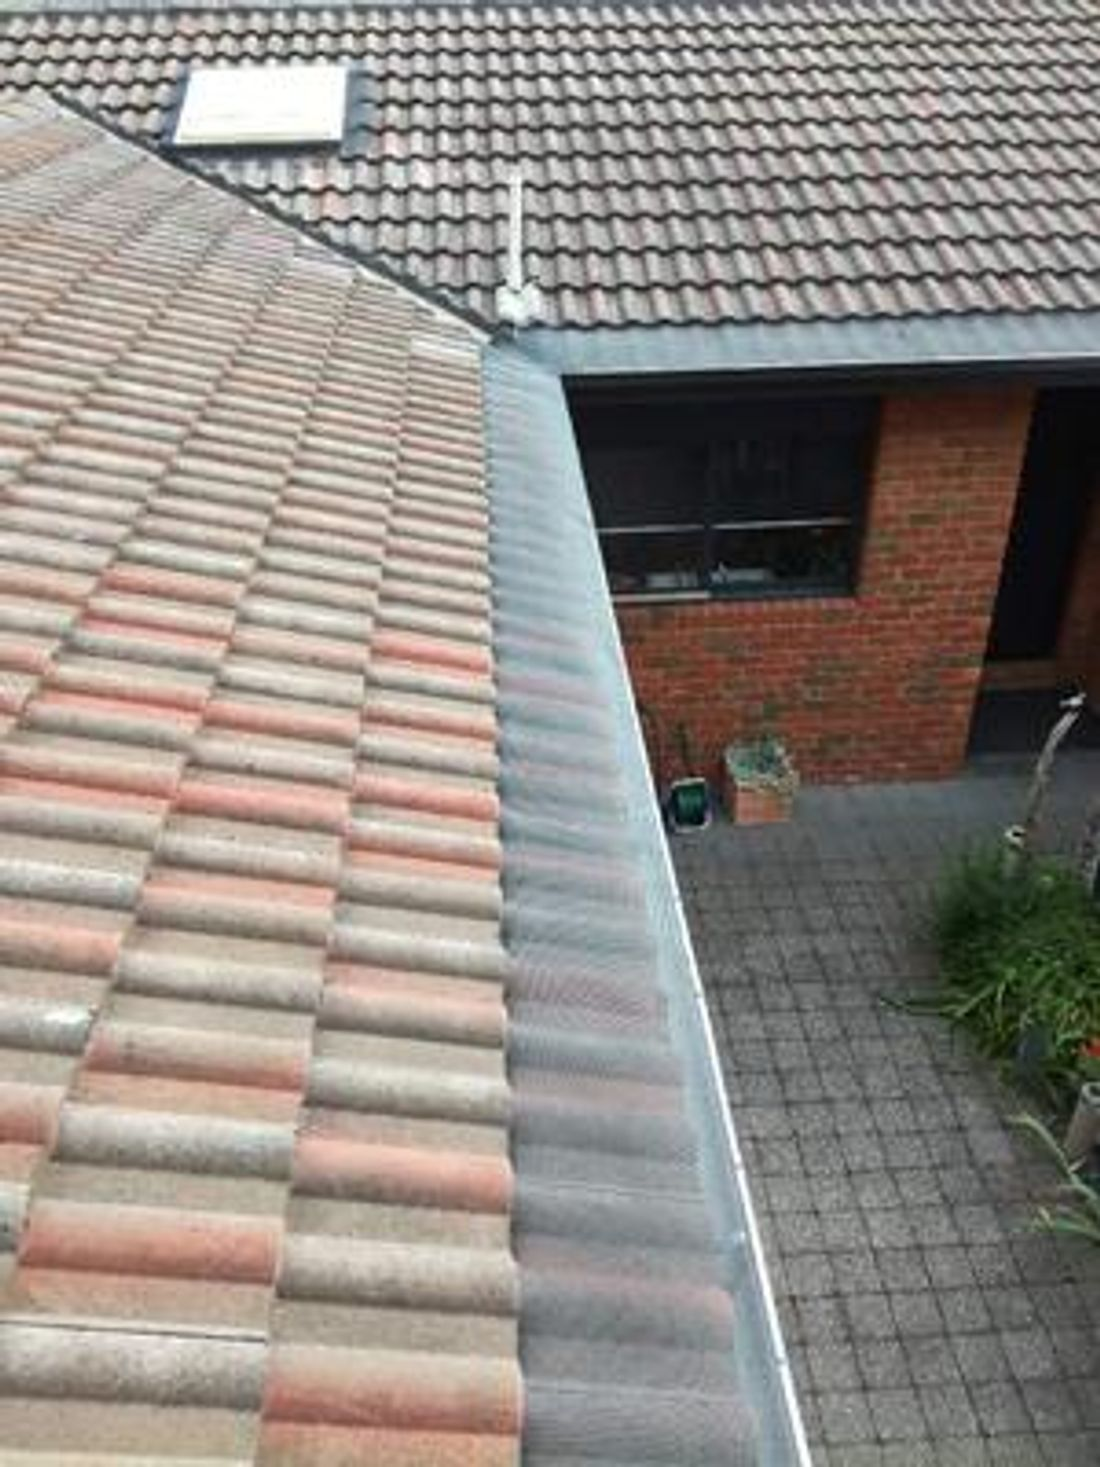 How To Install Gutter Guards on a Tiled Roof - hipages com au